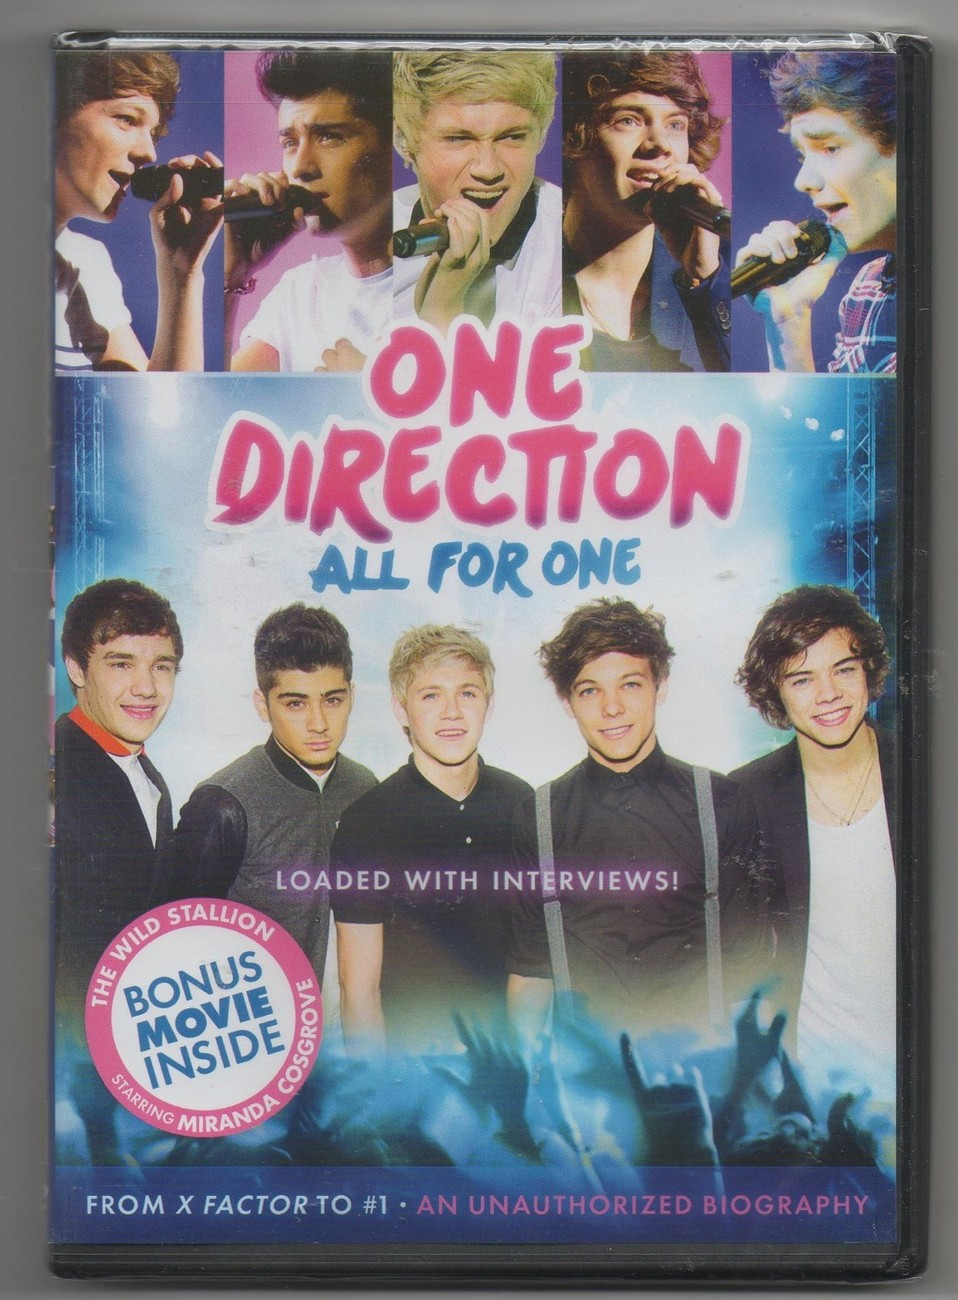 Primary image for One Direction All for One DVD Limited Edition 2012 Harry Styles, Niall Horan